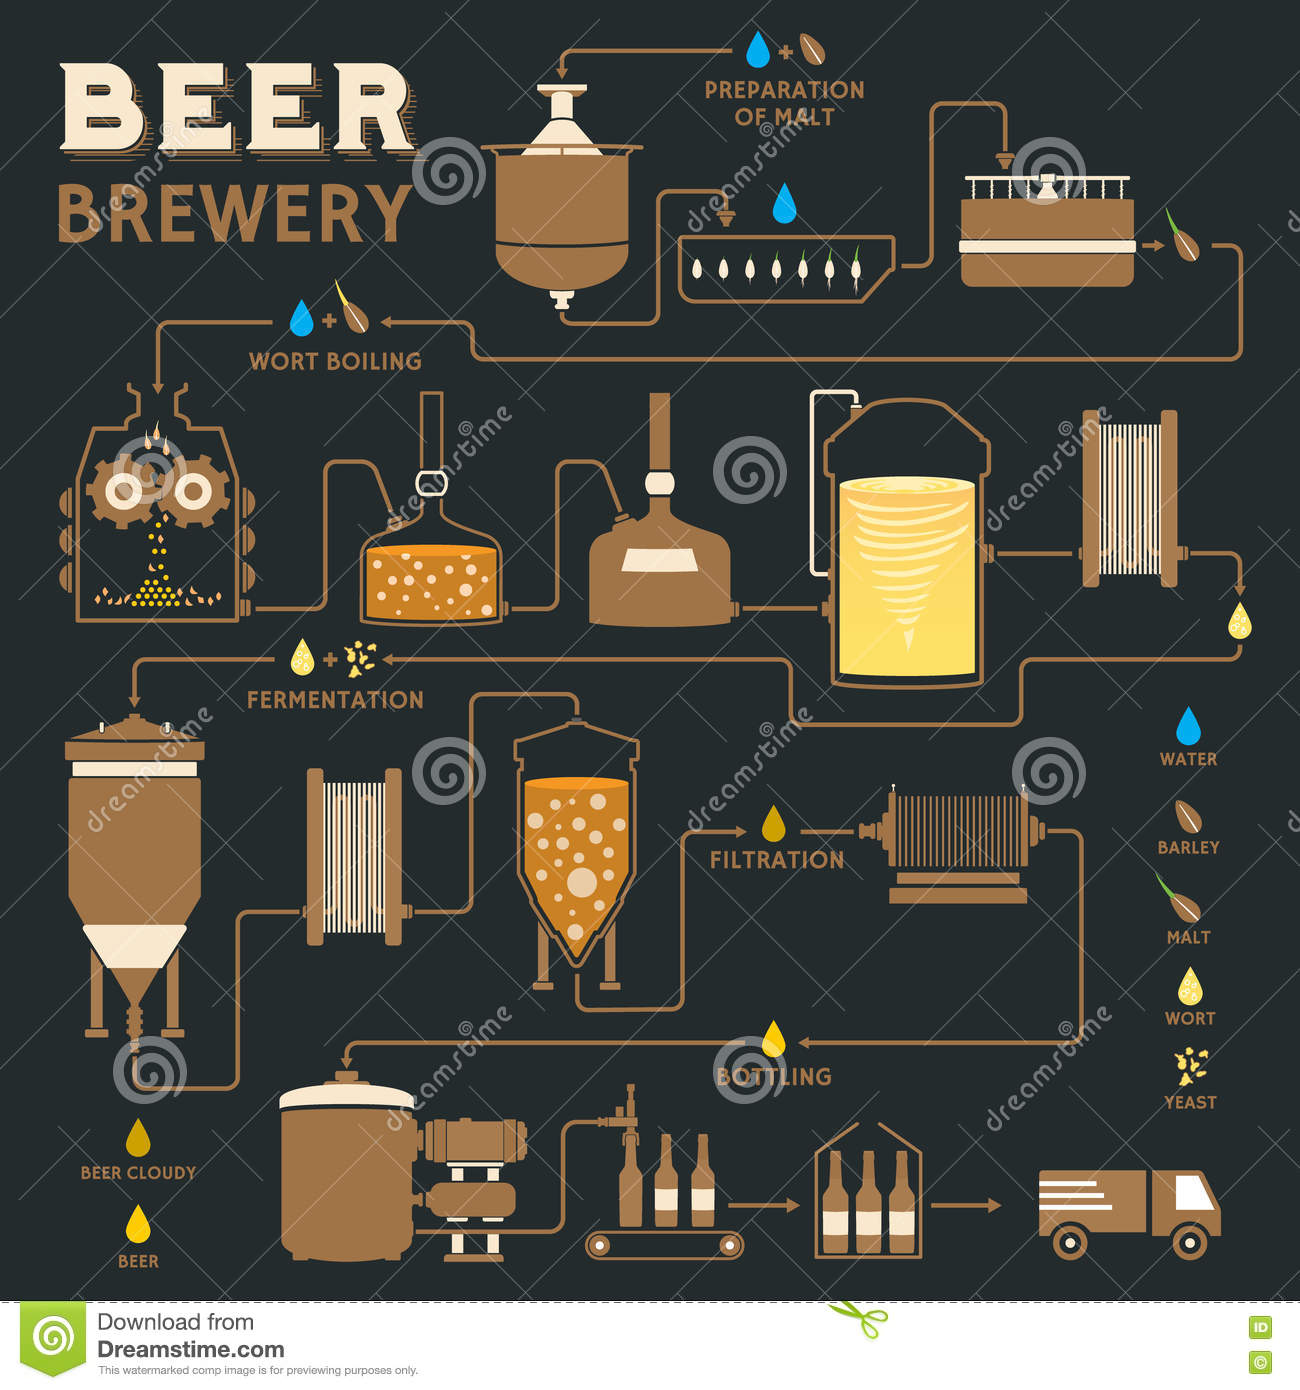 an analysis of the process and ingredients in brewing beer Together with yeast these ingredients are used in a centuries-old brewing process  beer all of these ingredients are brewing beer is a 100% natural process.